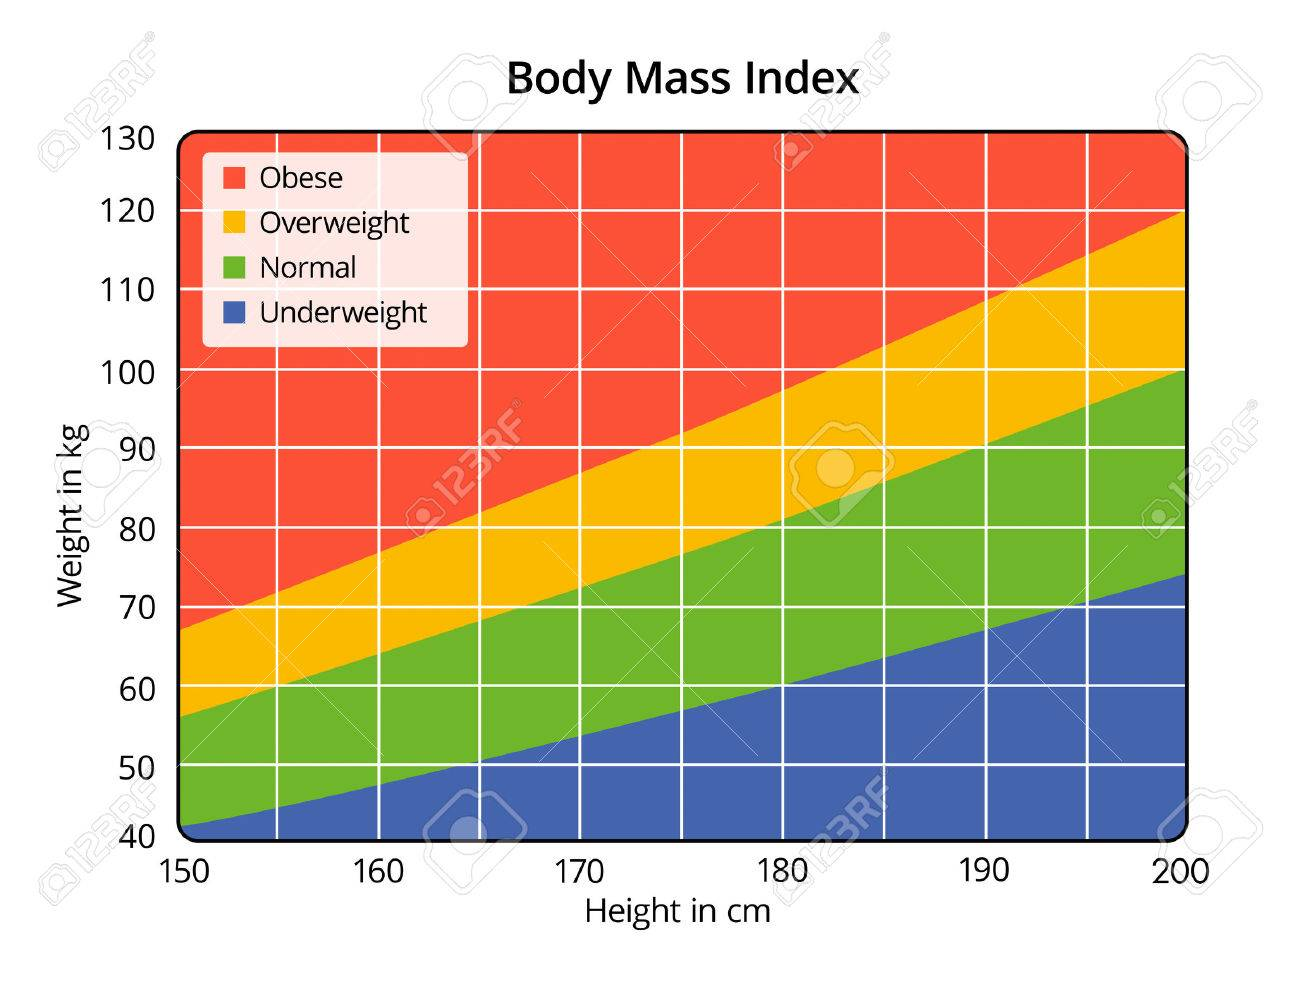 Body Mass Index In Cm And Kg Stock Photo 27602177 Body Mass Index In Cm And